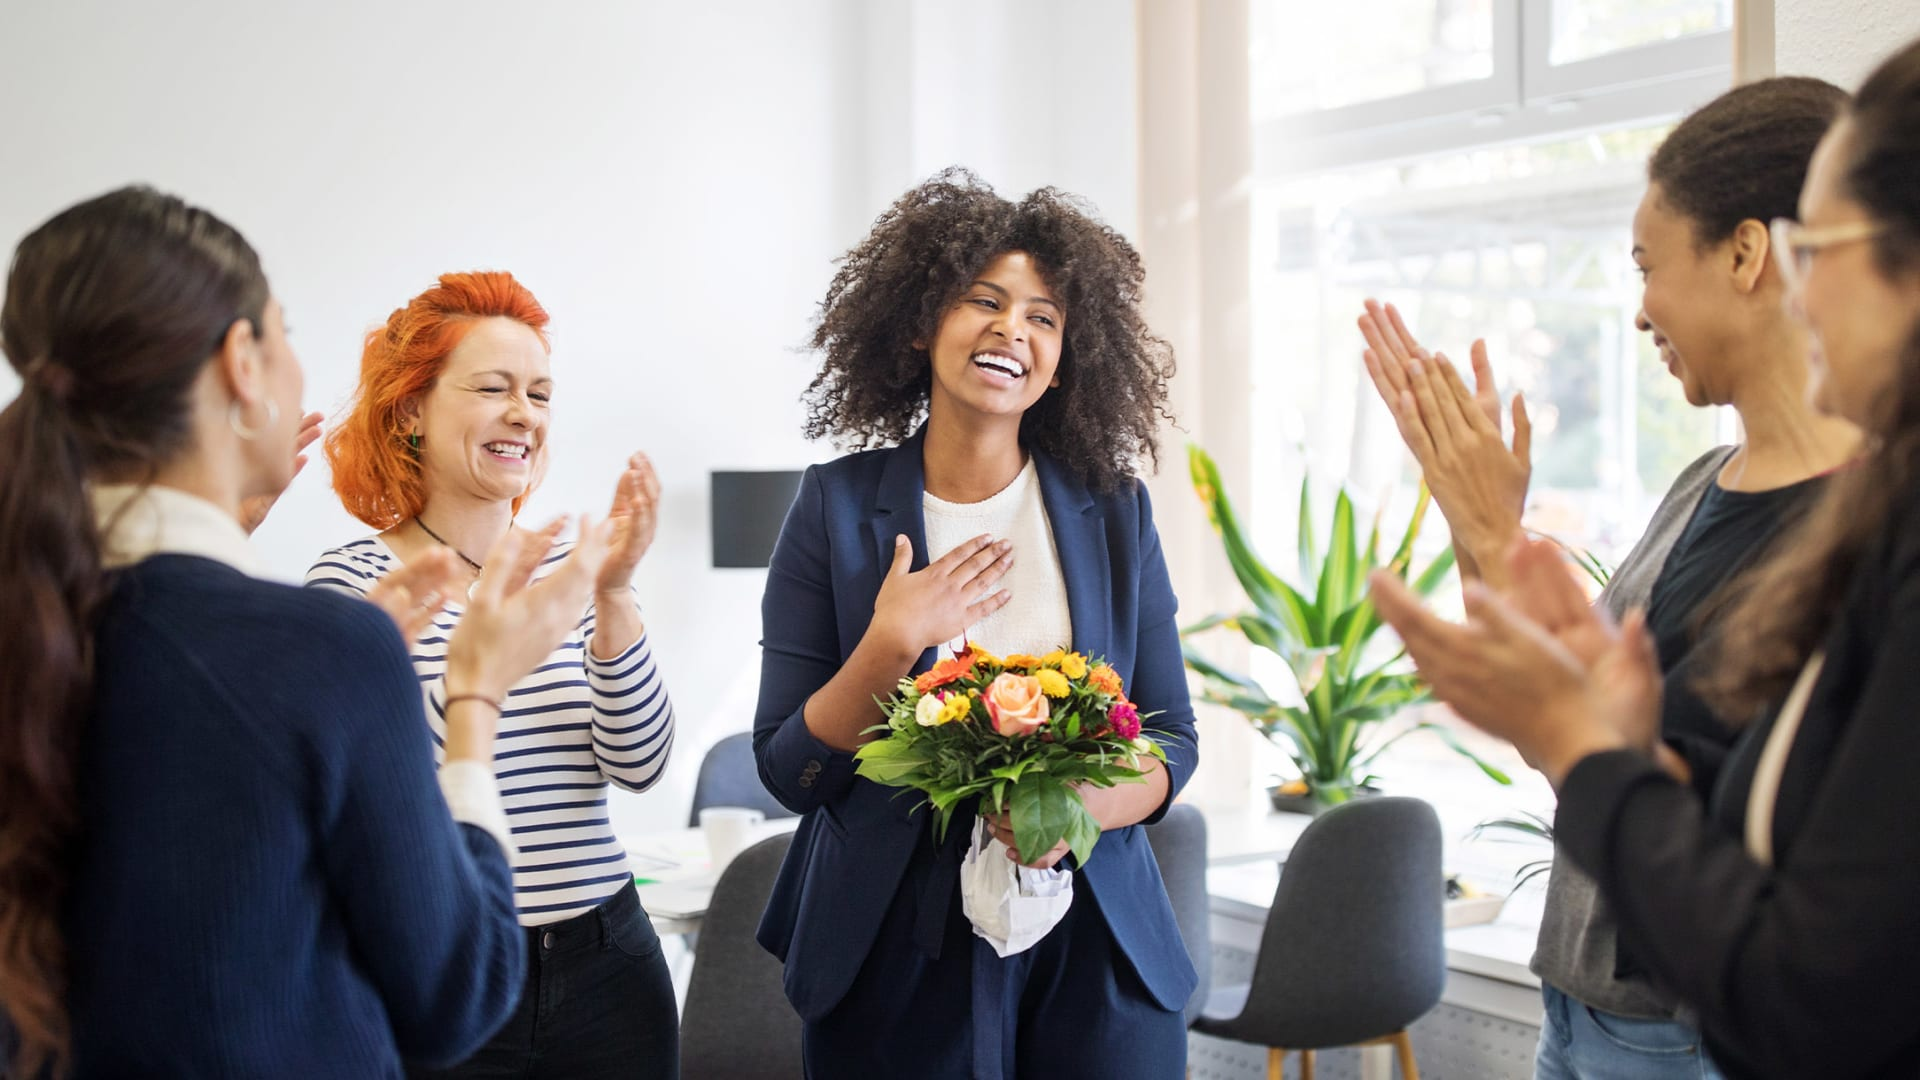 Need Superstar Employees on Your Team? Depending on the Situation, Science Says Don't Hire Too Many